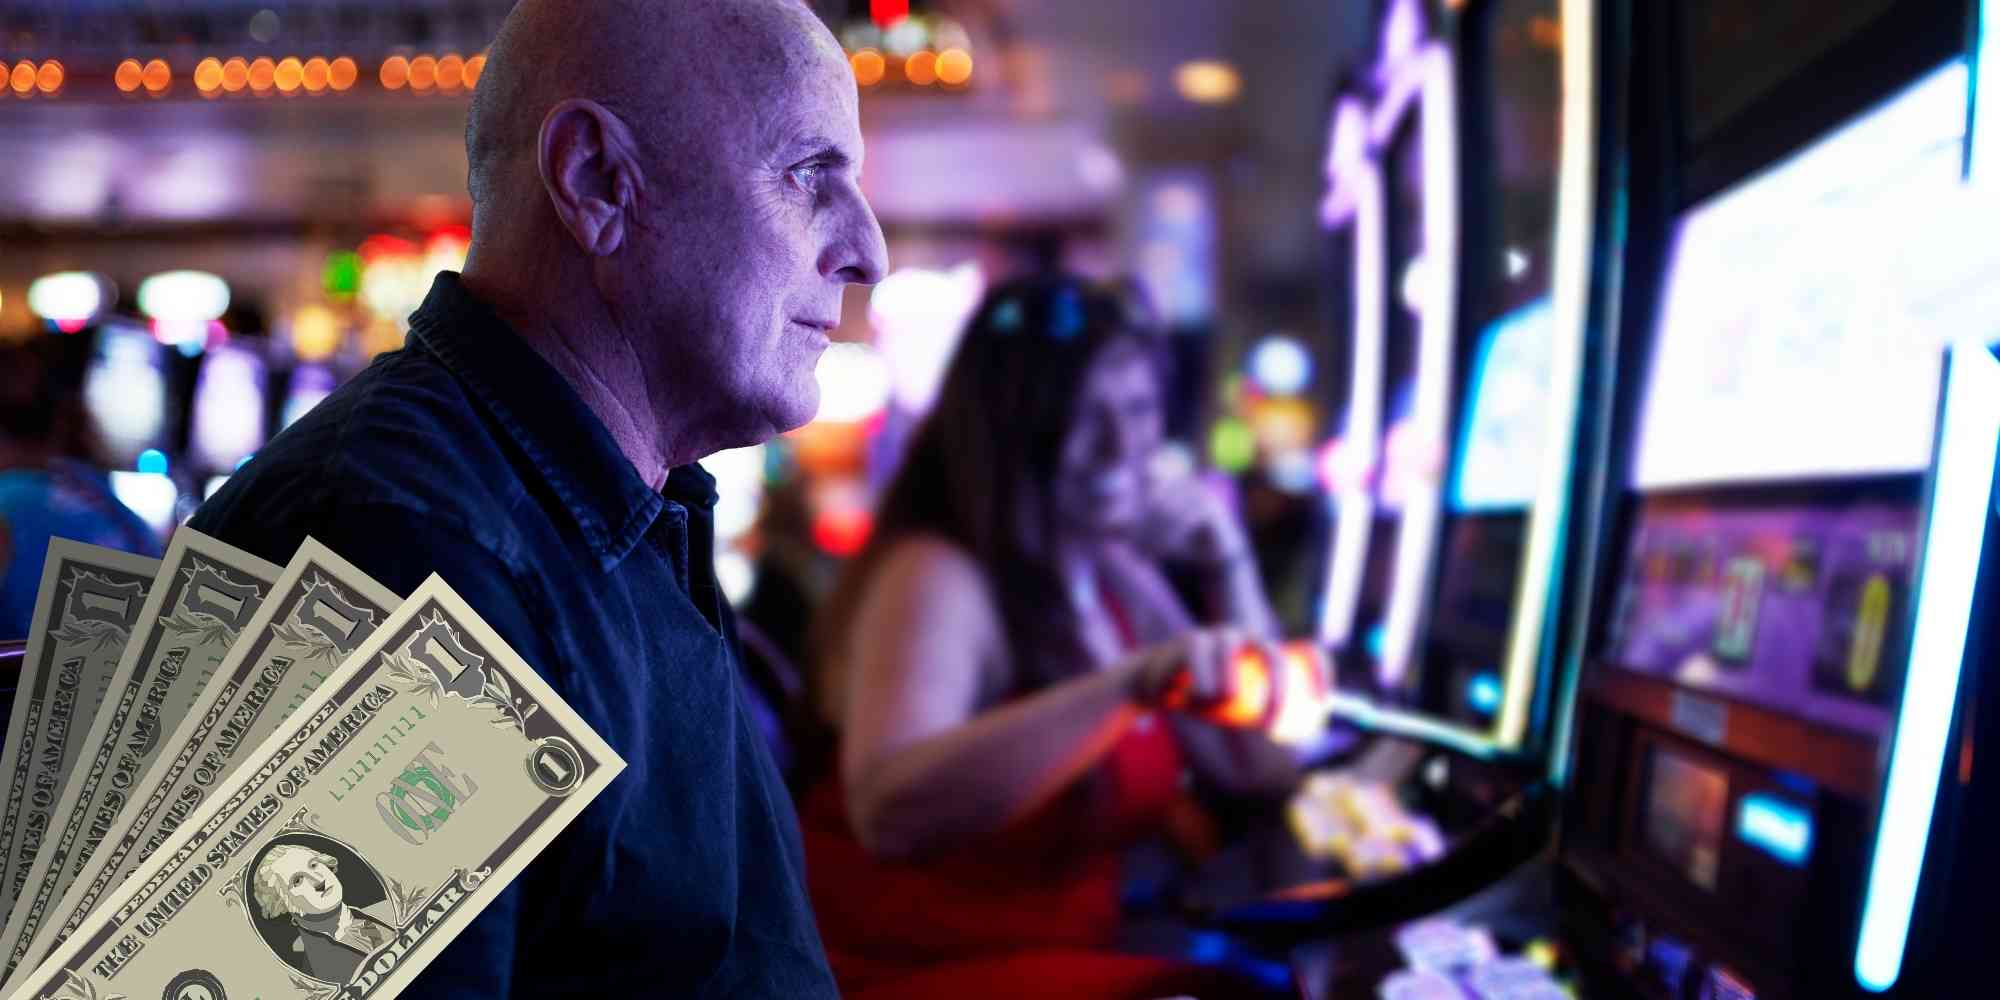 How Much Money Should I Bring To Play Slots